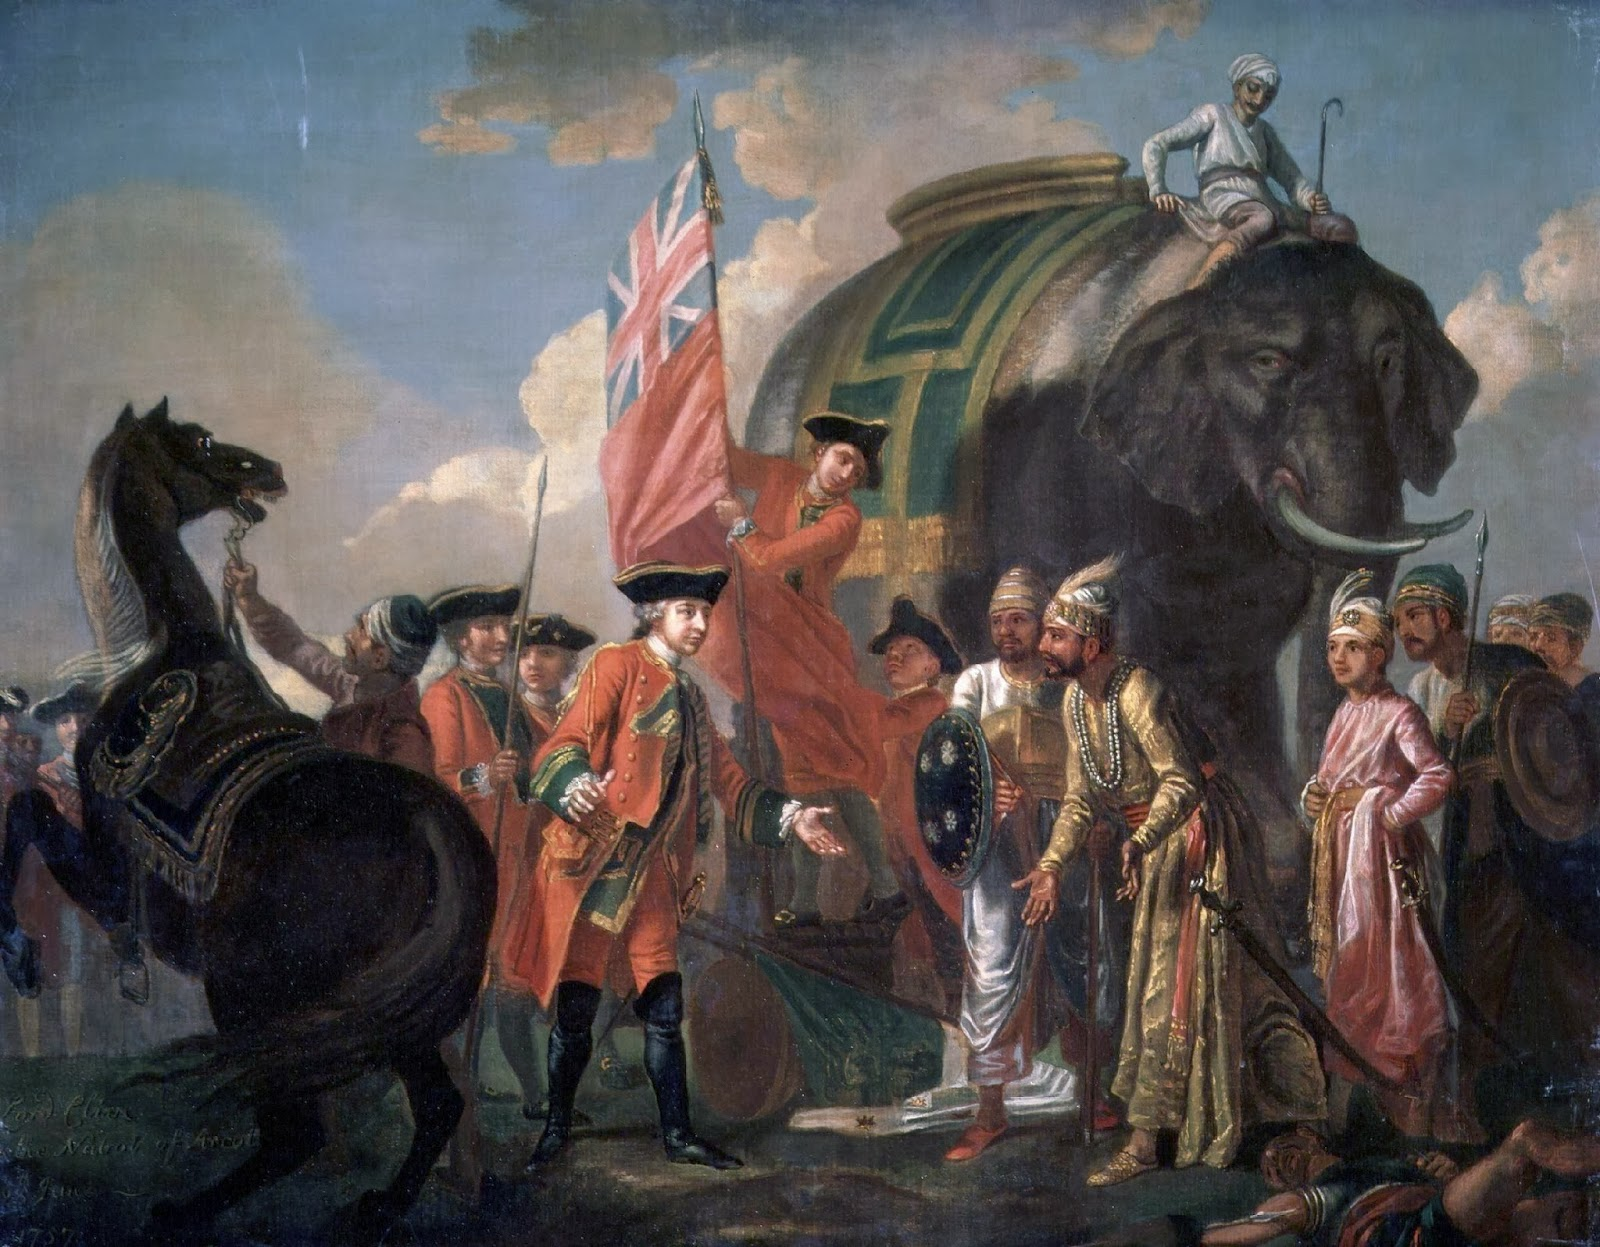 NPG title: Robert Clive and Mir Jafar after the Battle of Plassey, 1757